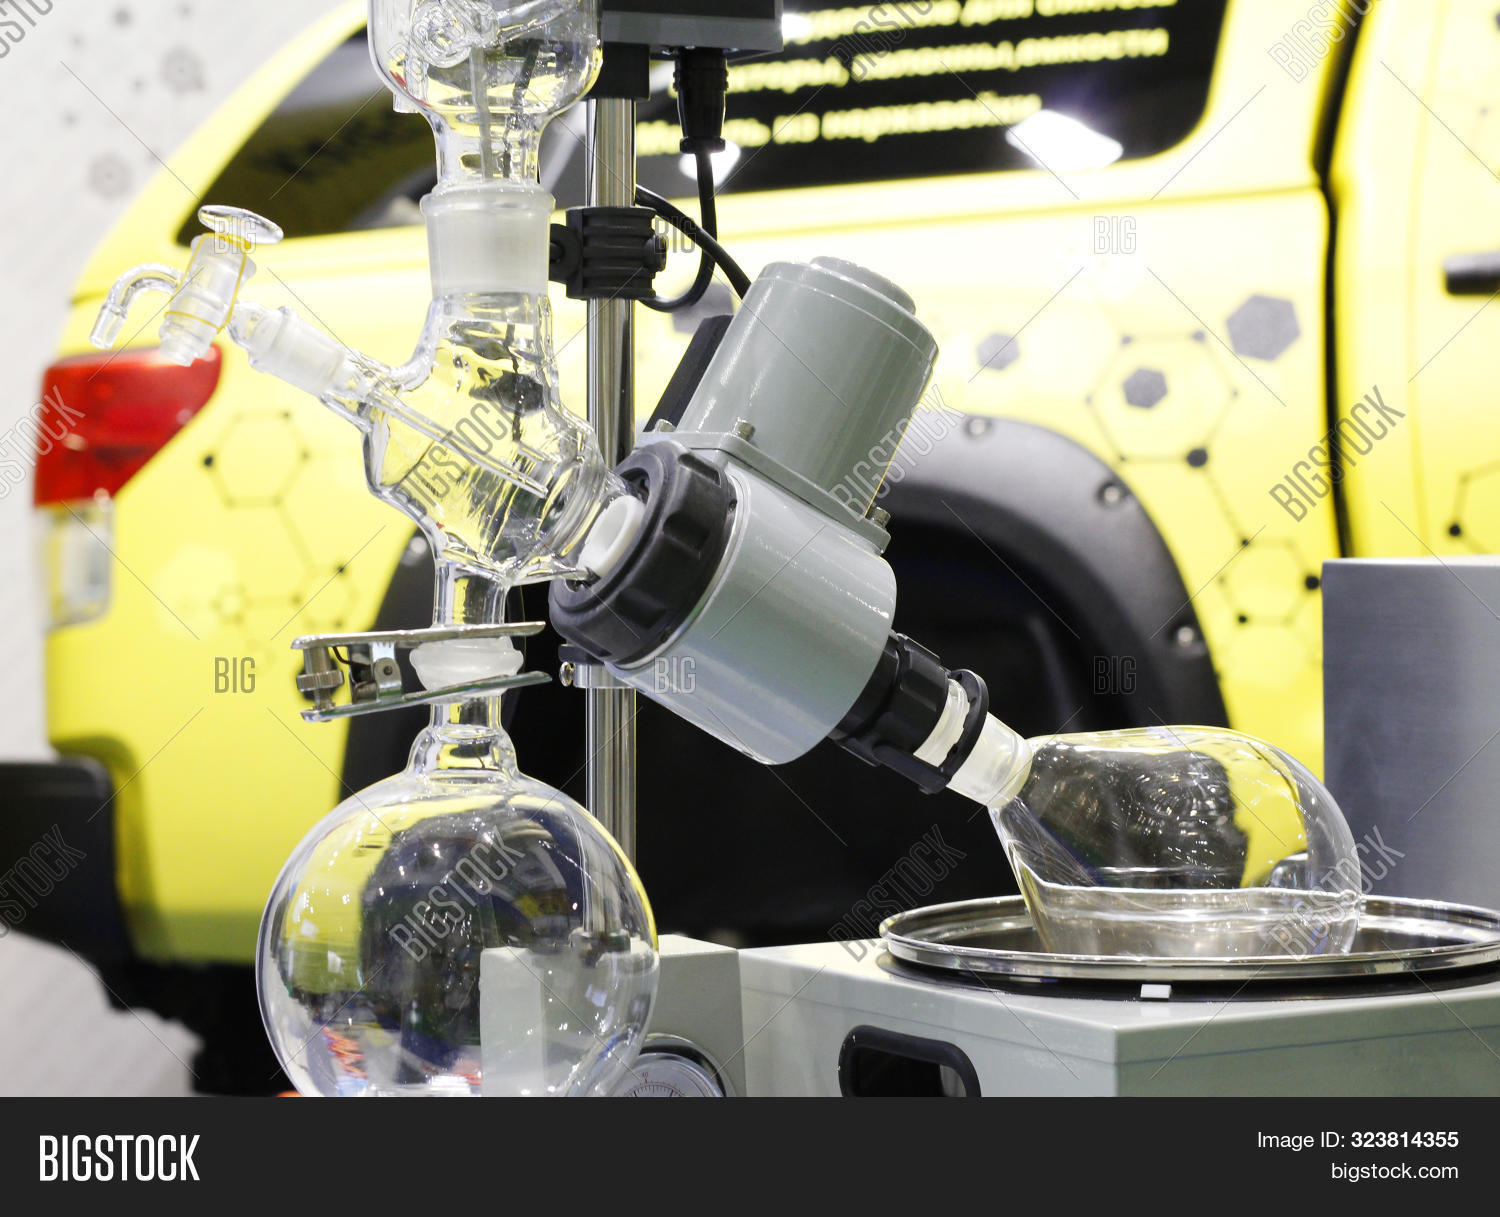 Devices For Chemical Synthesis In A Chemical Laboratory. Conducting Experiments.